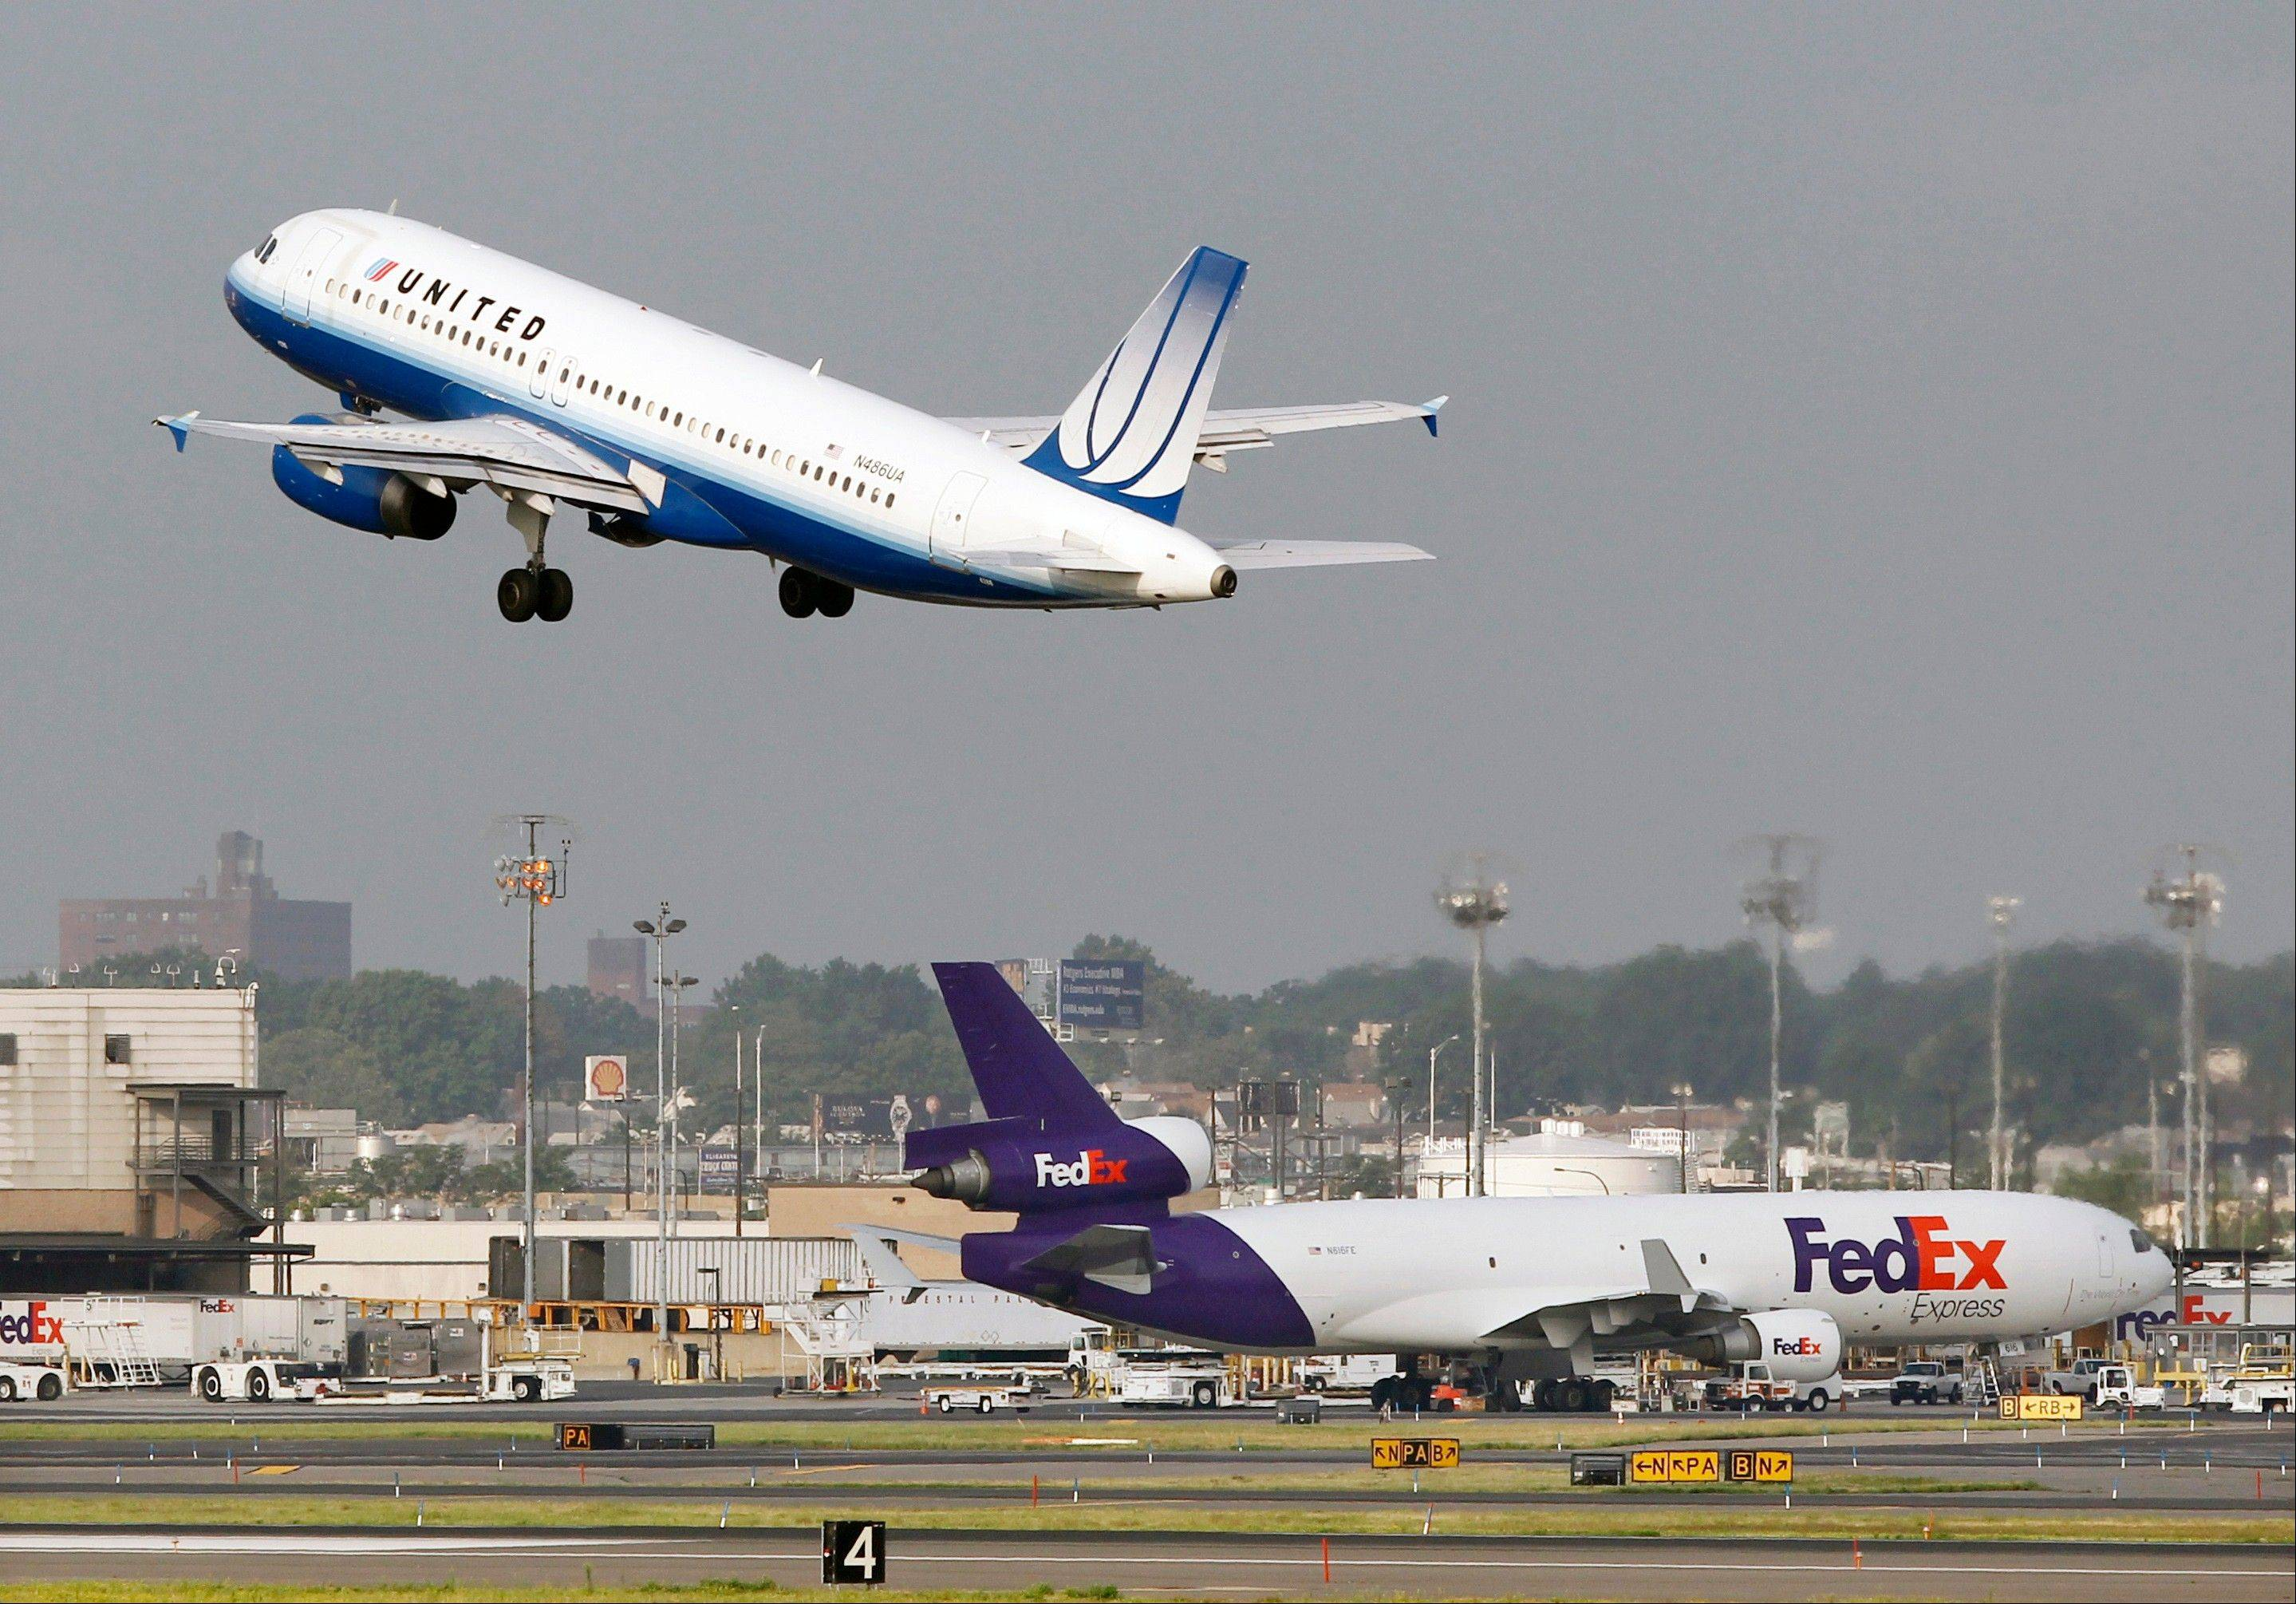 A United Airbus A320 passenger plane takes off at Newark Liberty International airport.